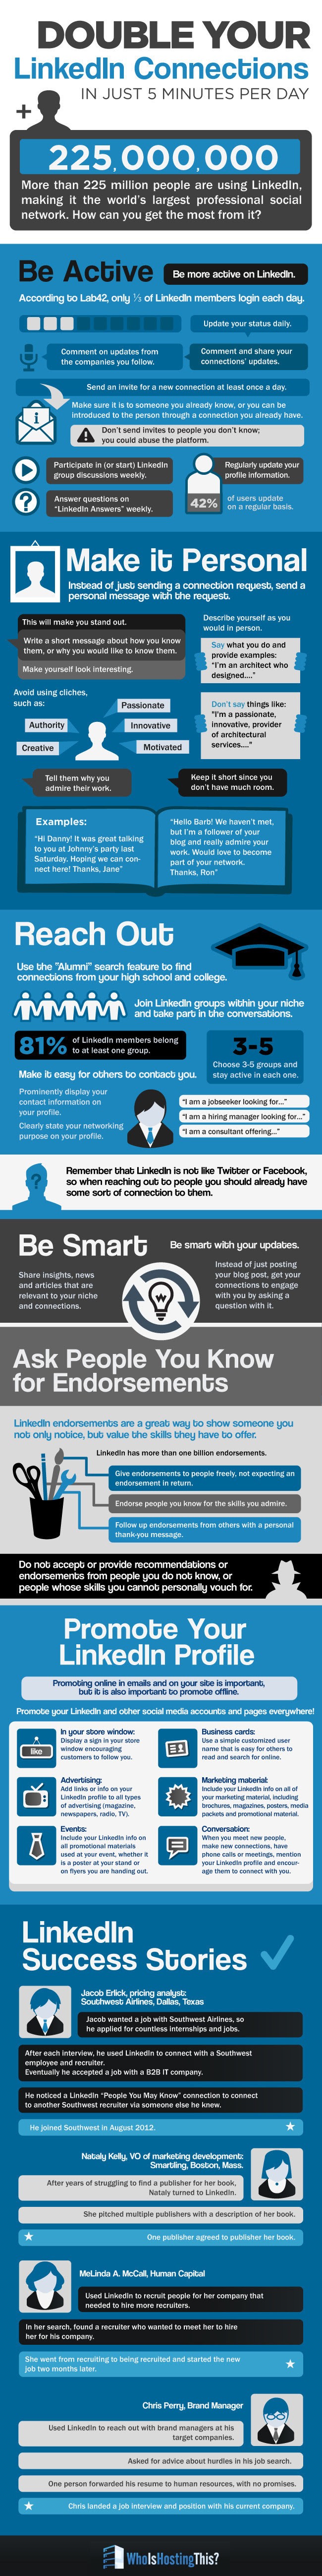 Double LinkedIn Connections Organically In Just 5 Minutes A Day [Infographic]